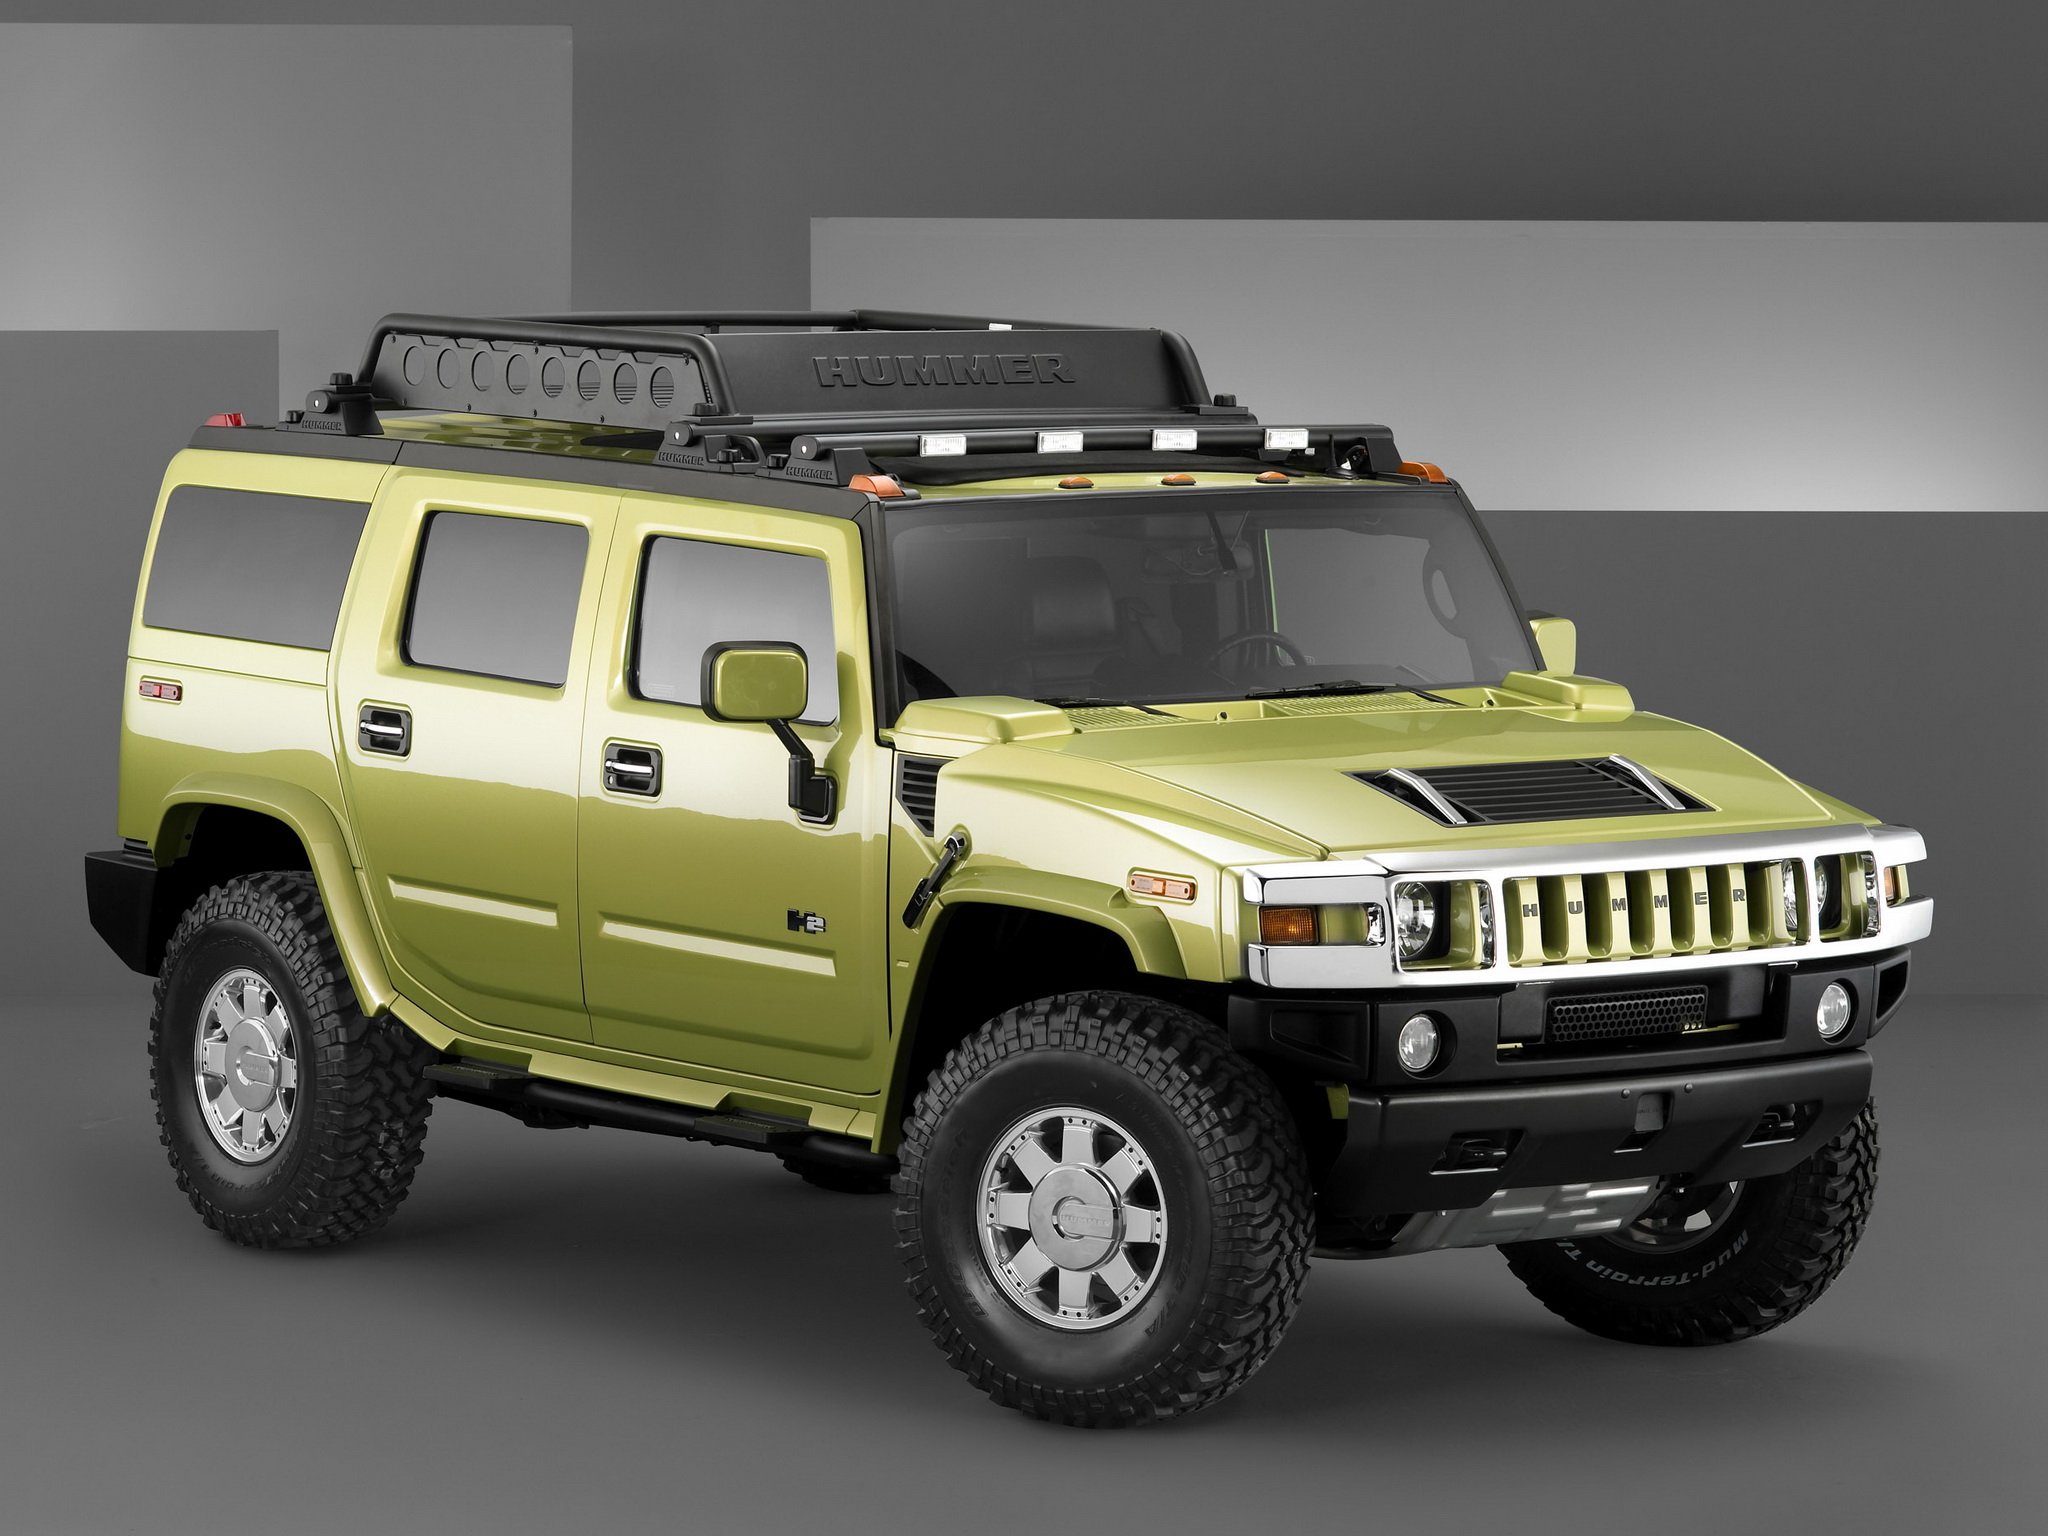 2018 Hummer H2 SUV Concept photo - 1